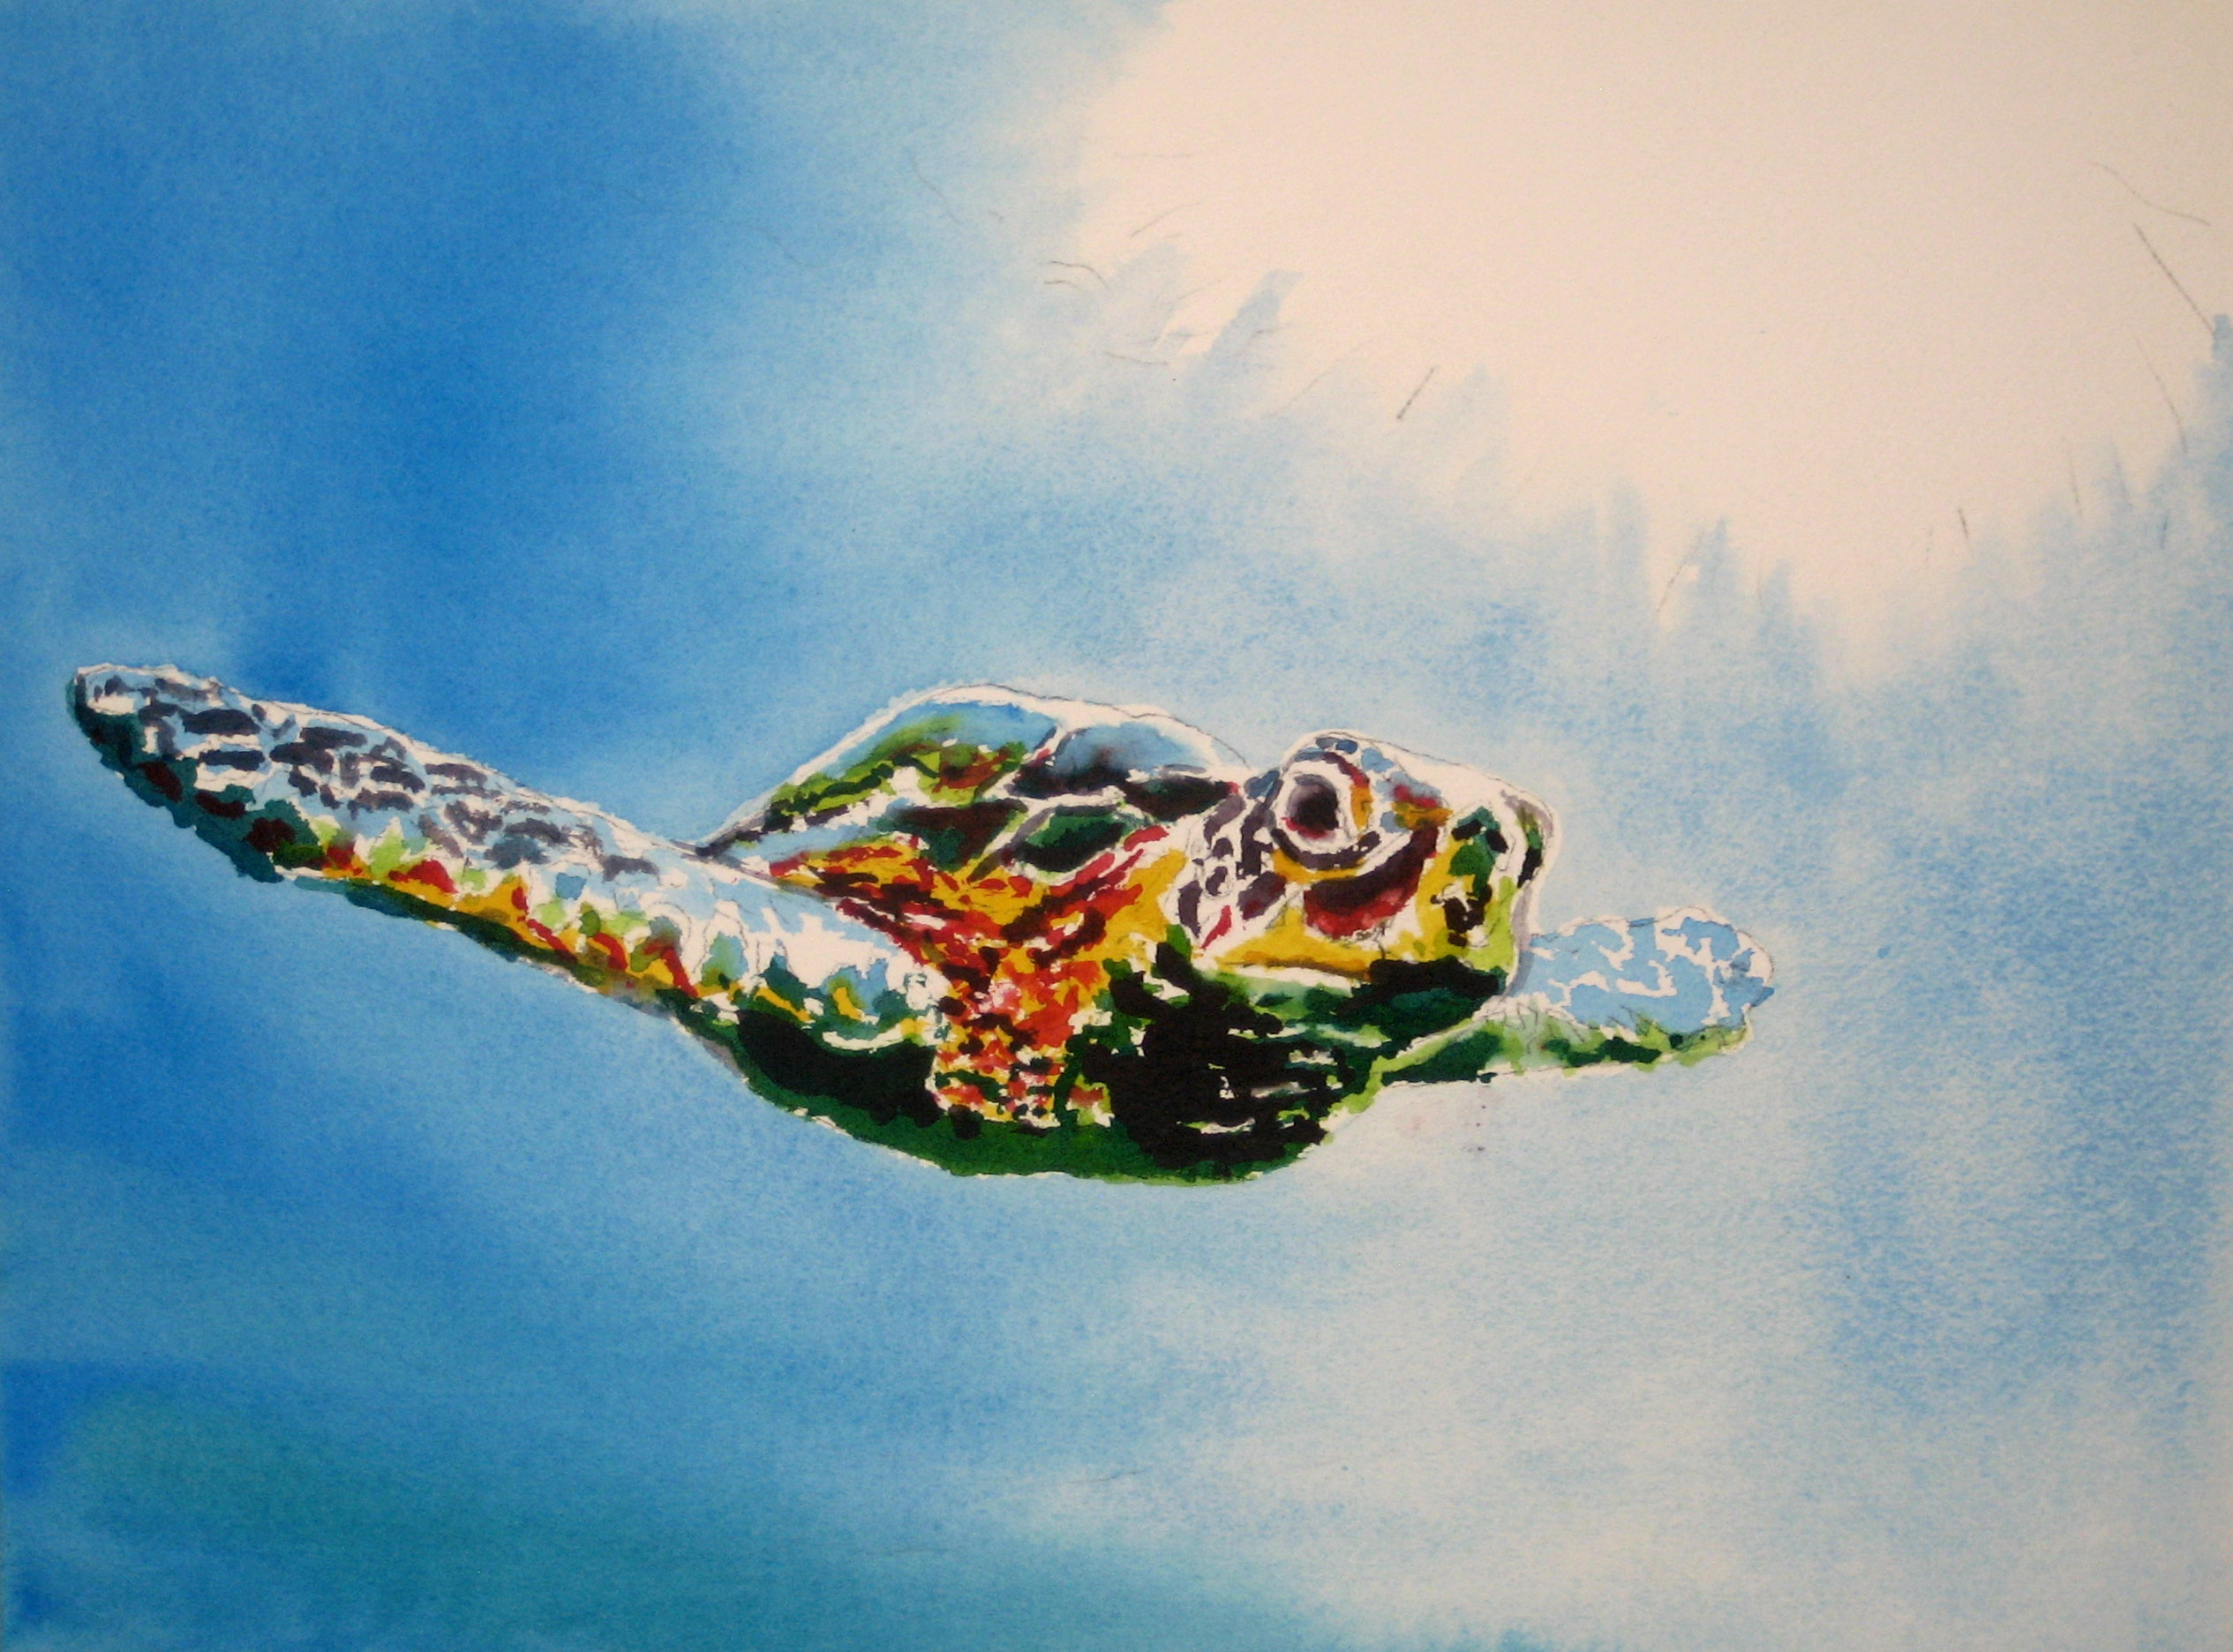 https://0201.nccdn.net/1_2/000/000/122/8c8/Sea-Turtle-2530x1872.jpg